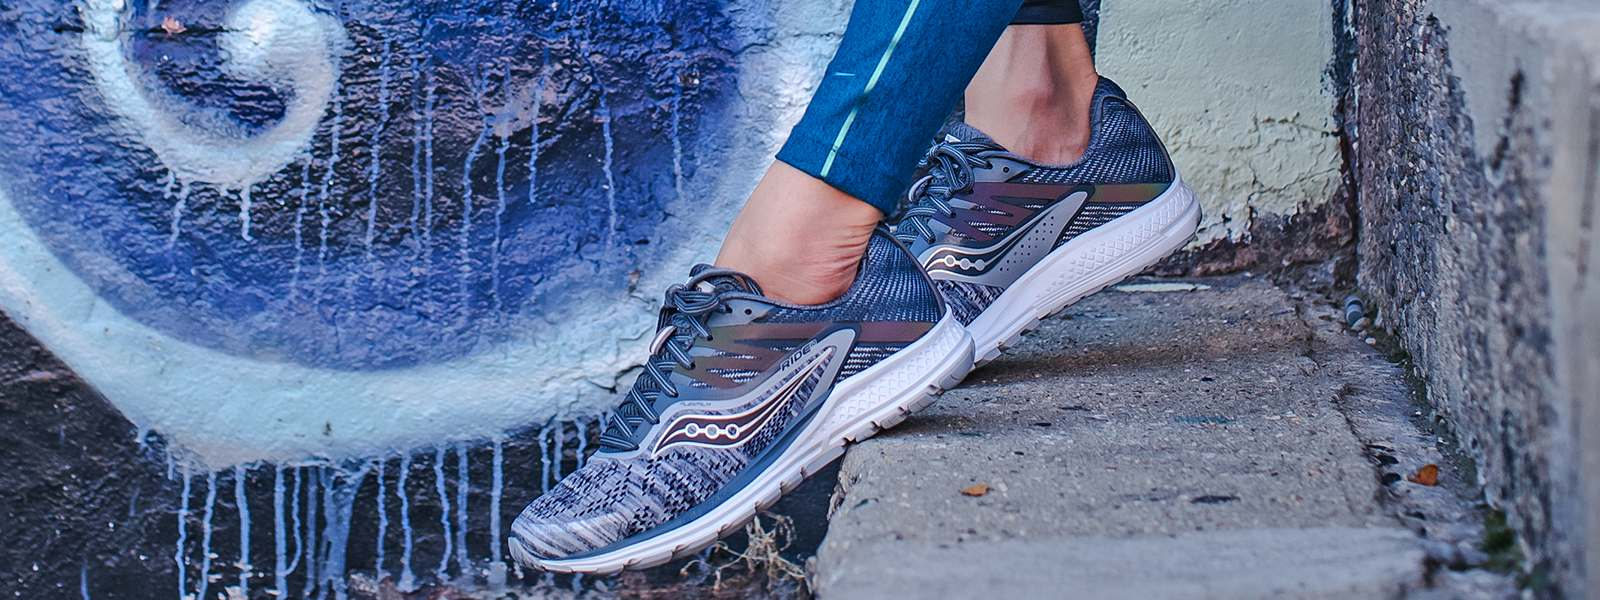 Saucony Ride 10 Chroma